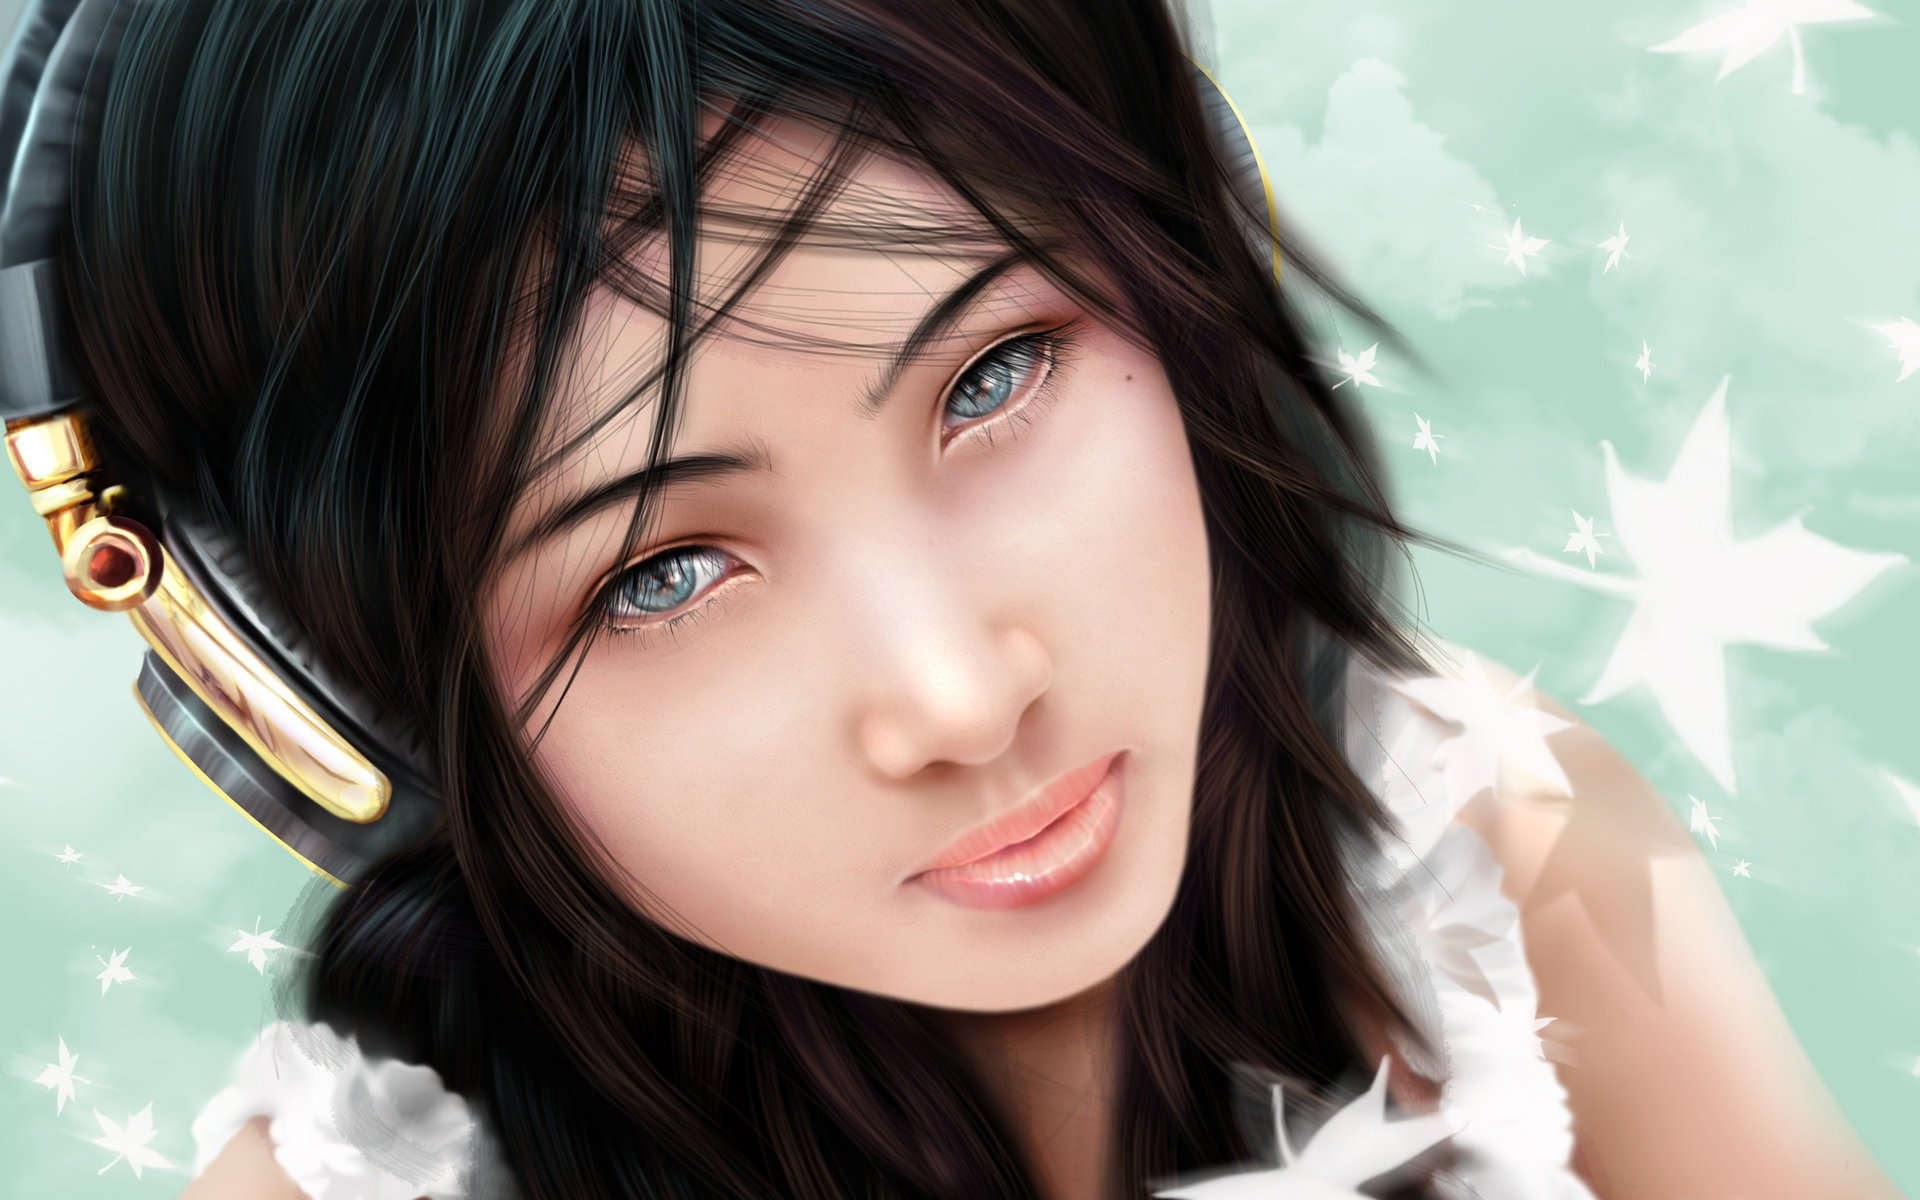 Girl in ear phones wallpapers and images   wallpapers pictures 1920x1200